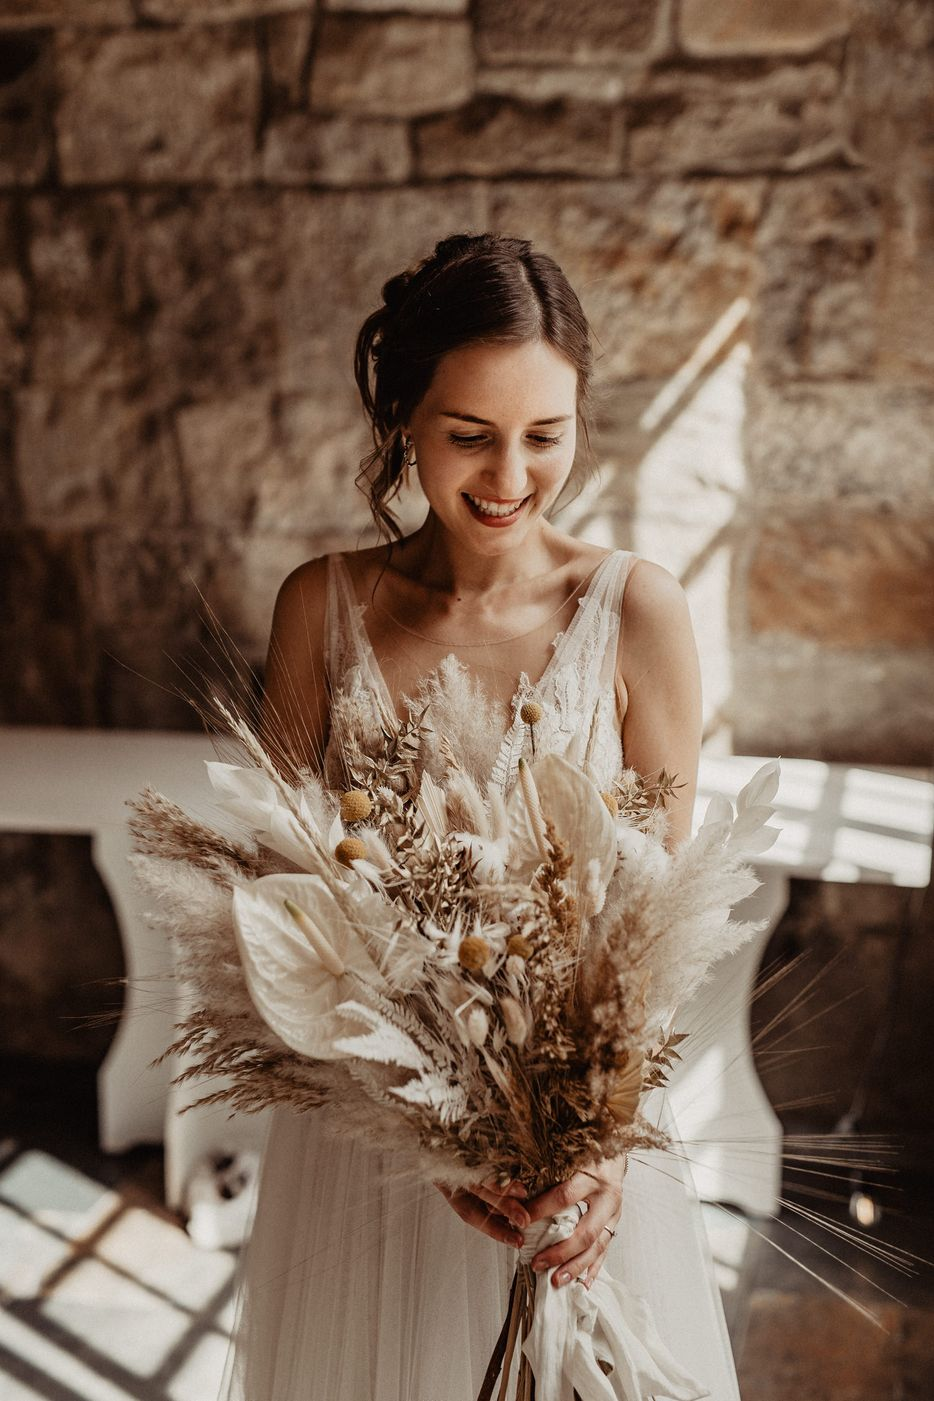 Bride with Dried Flower Wedding Bouquet